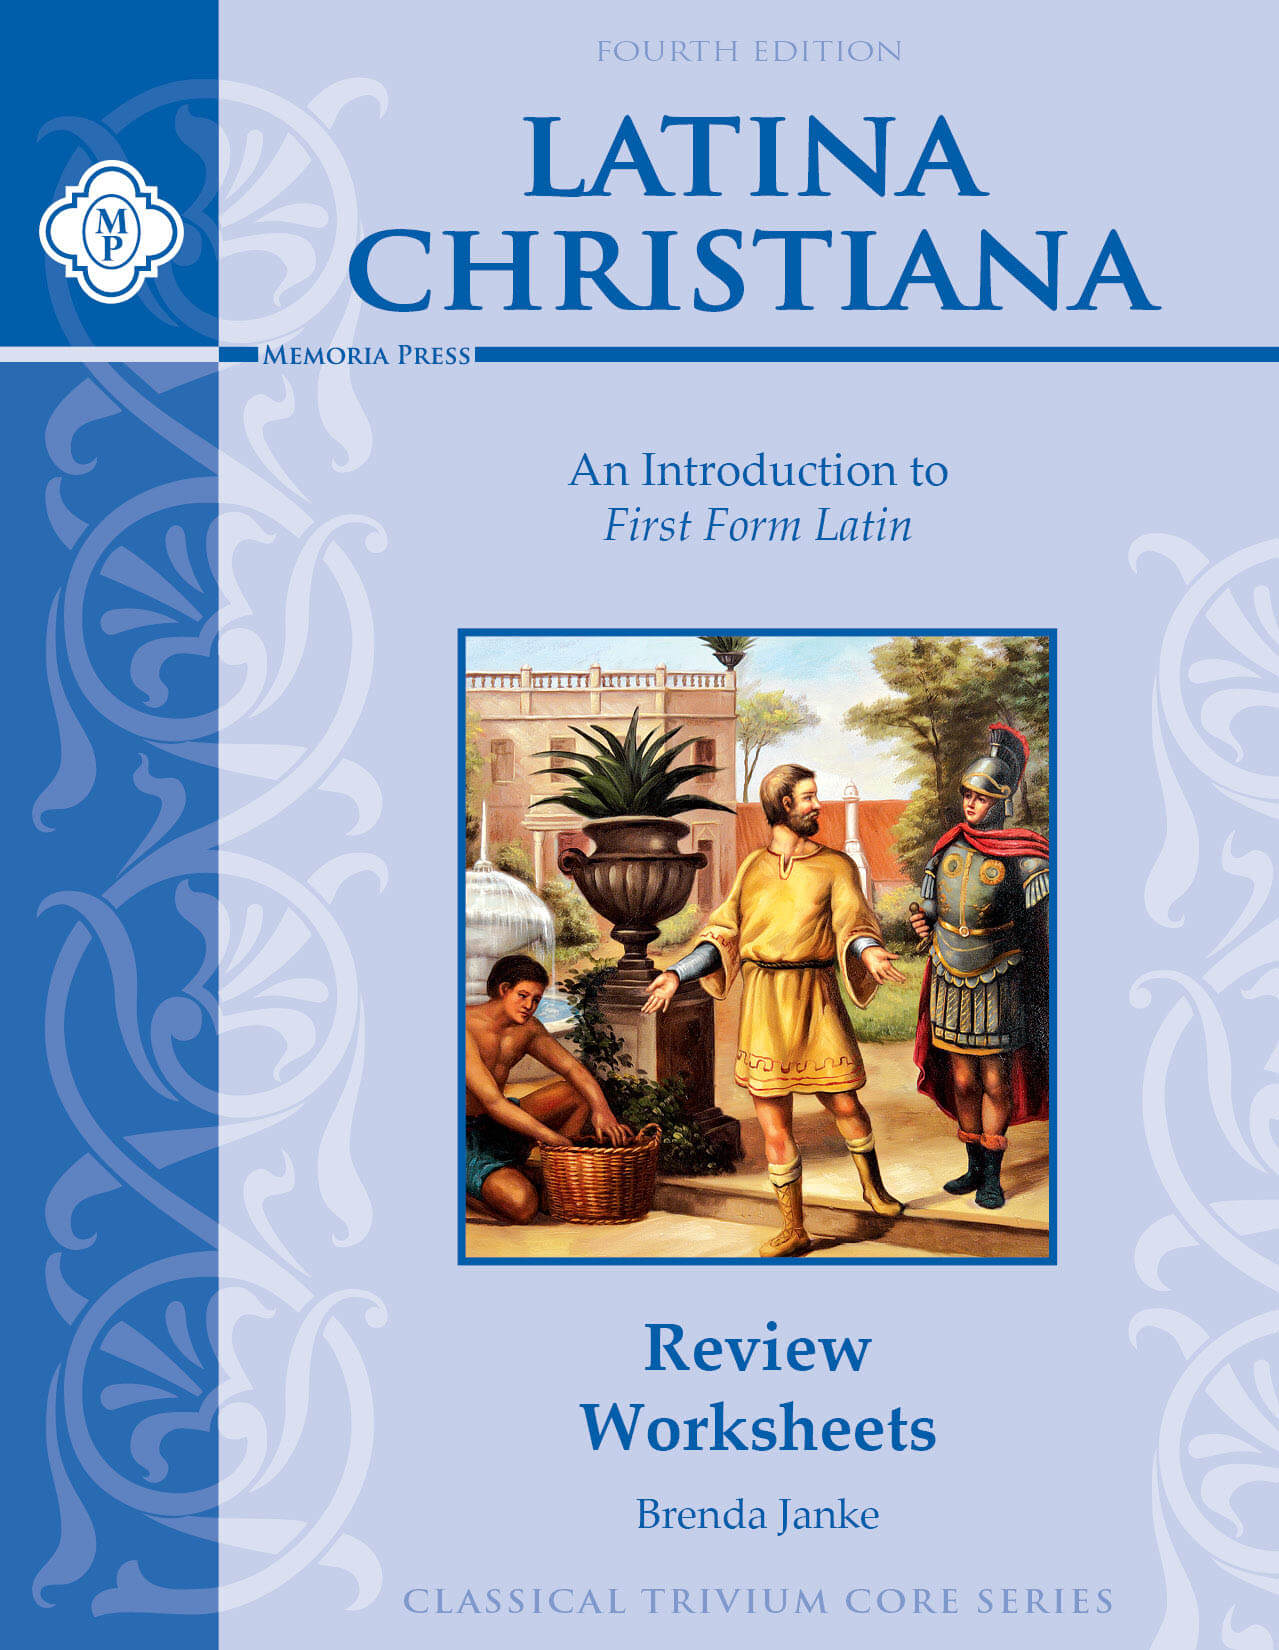 Latina Christiana Review Worksheets